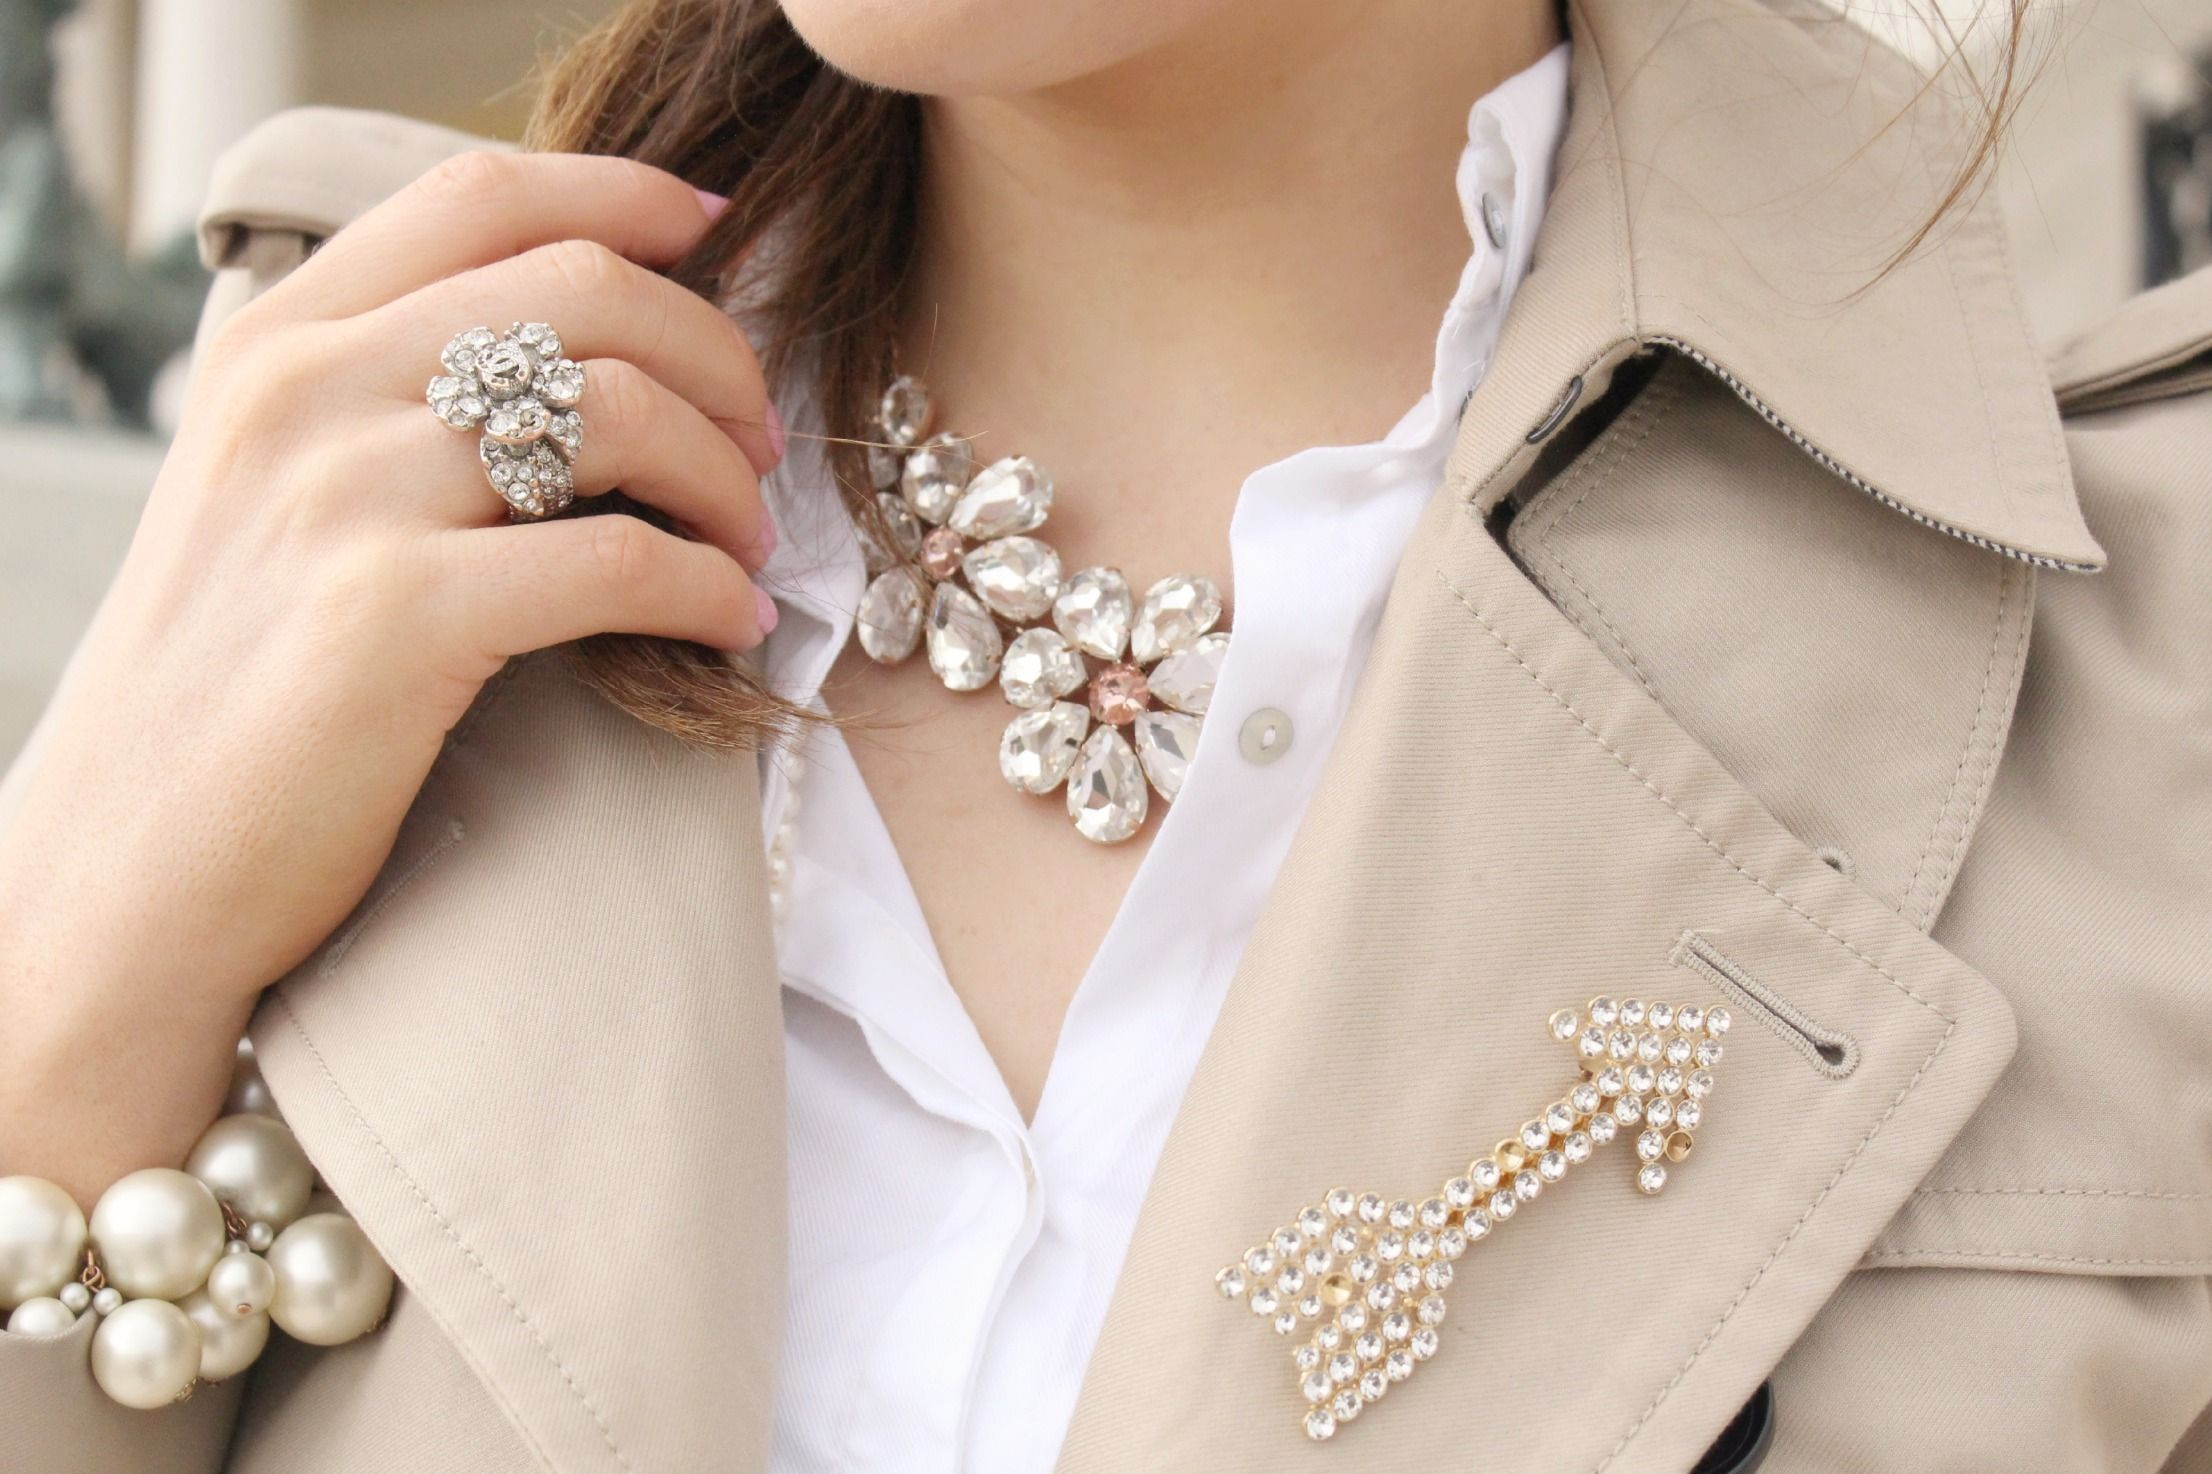 Jewellery #pearls #crystals #accessories